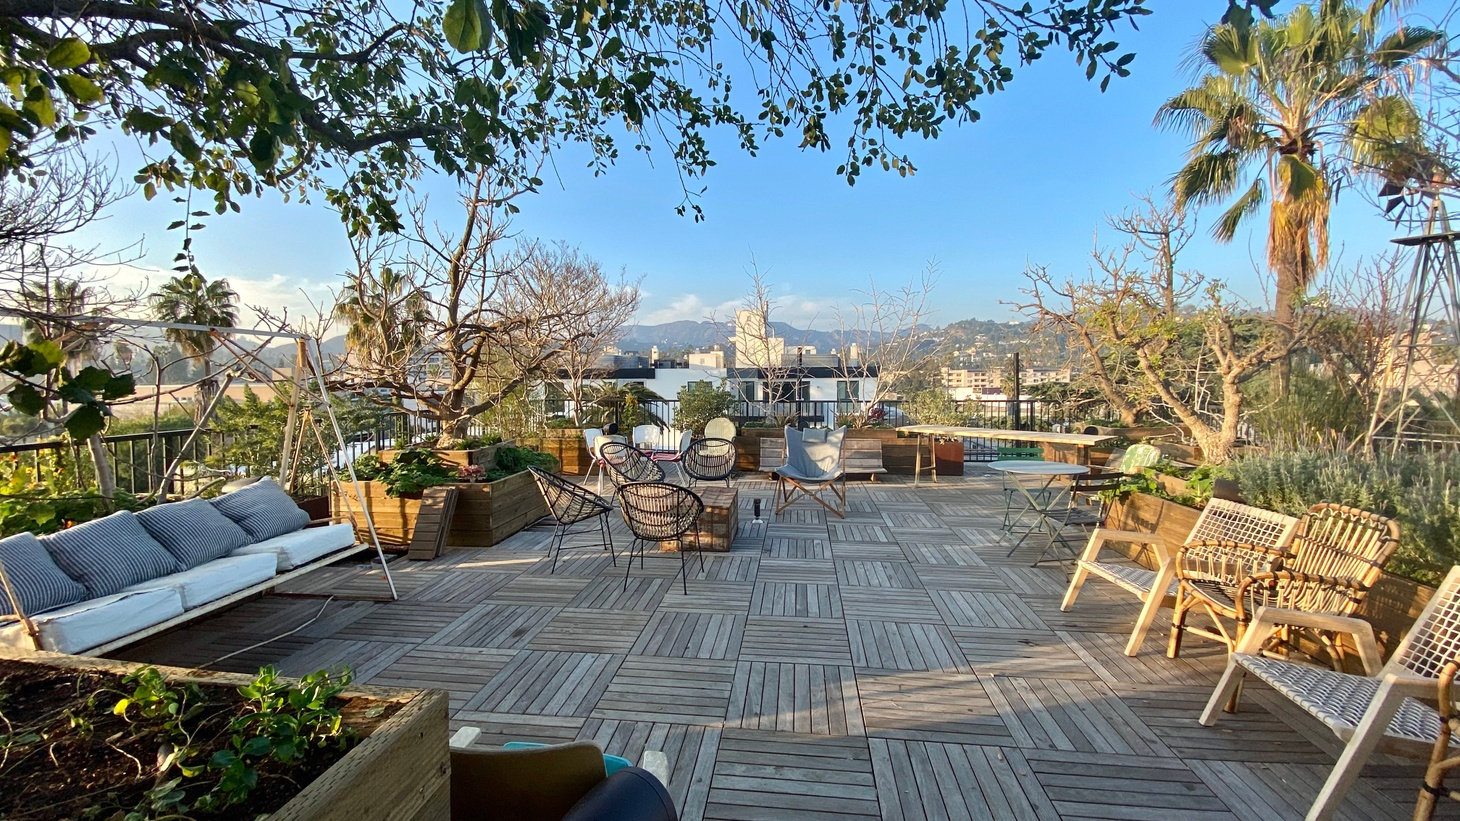 The rooftop at Treehouse, a co-living apartment building in Hollywood, features a cafeteria and is designed for group meals and socializing.